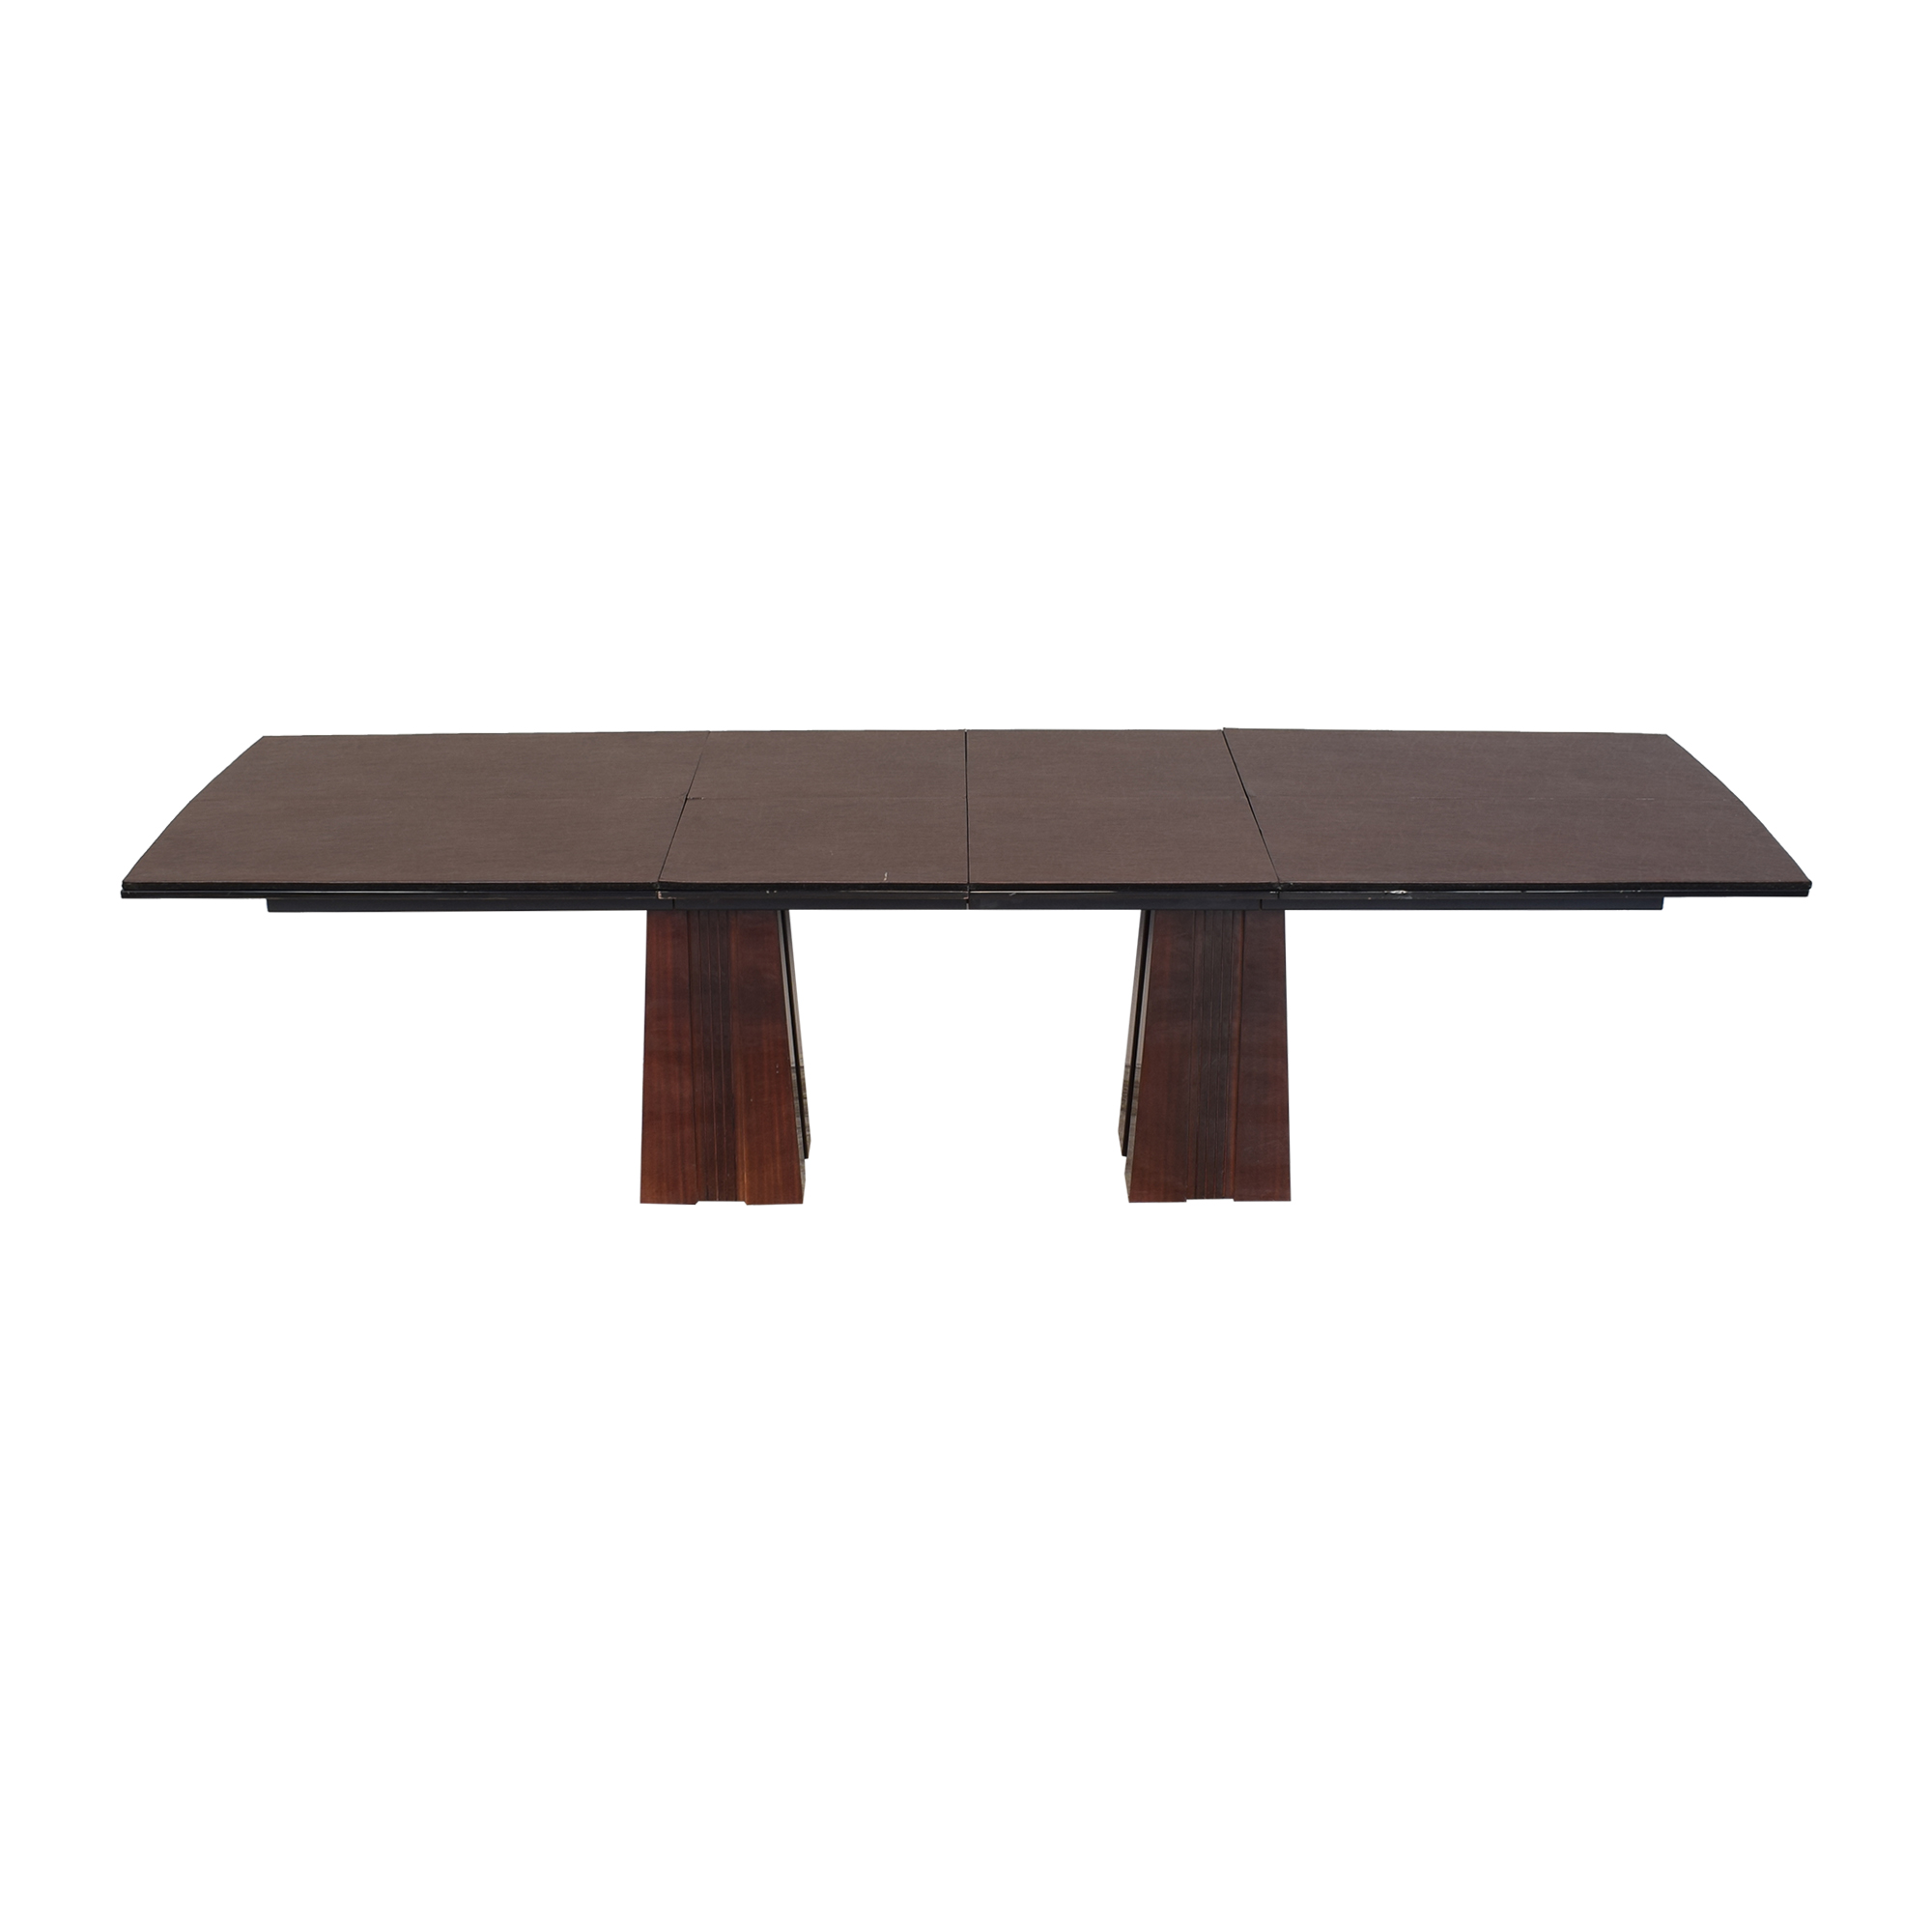 Dakota Jackson Dakota Jackson Ariel Collection Dining Table second hand